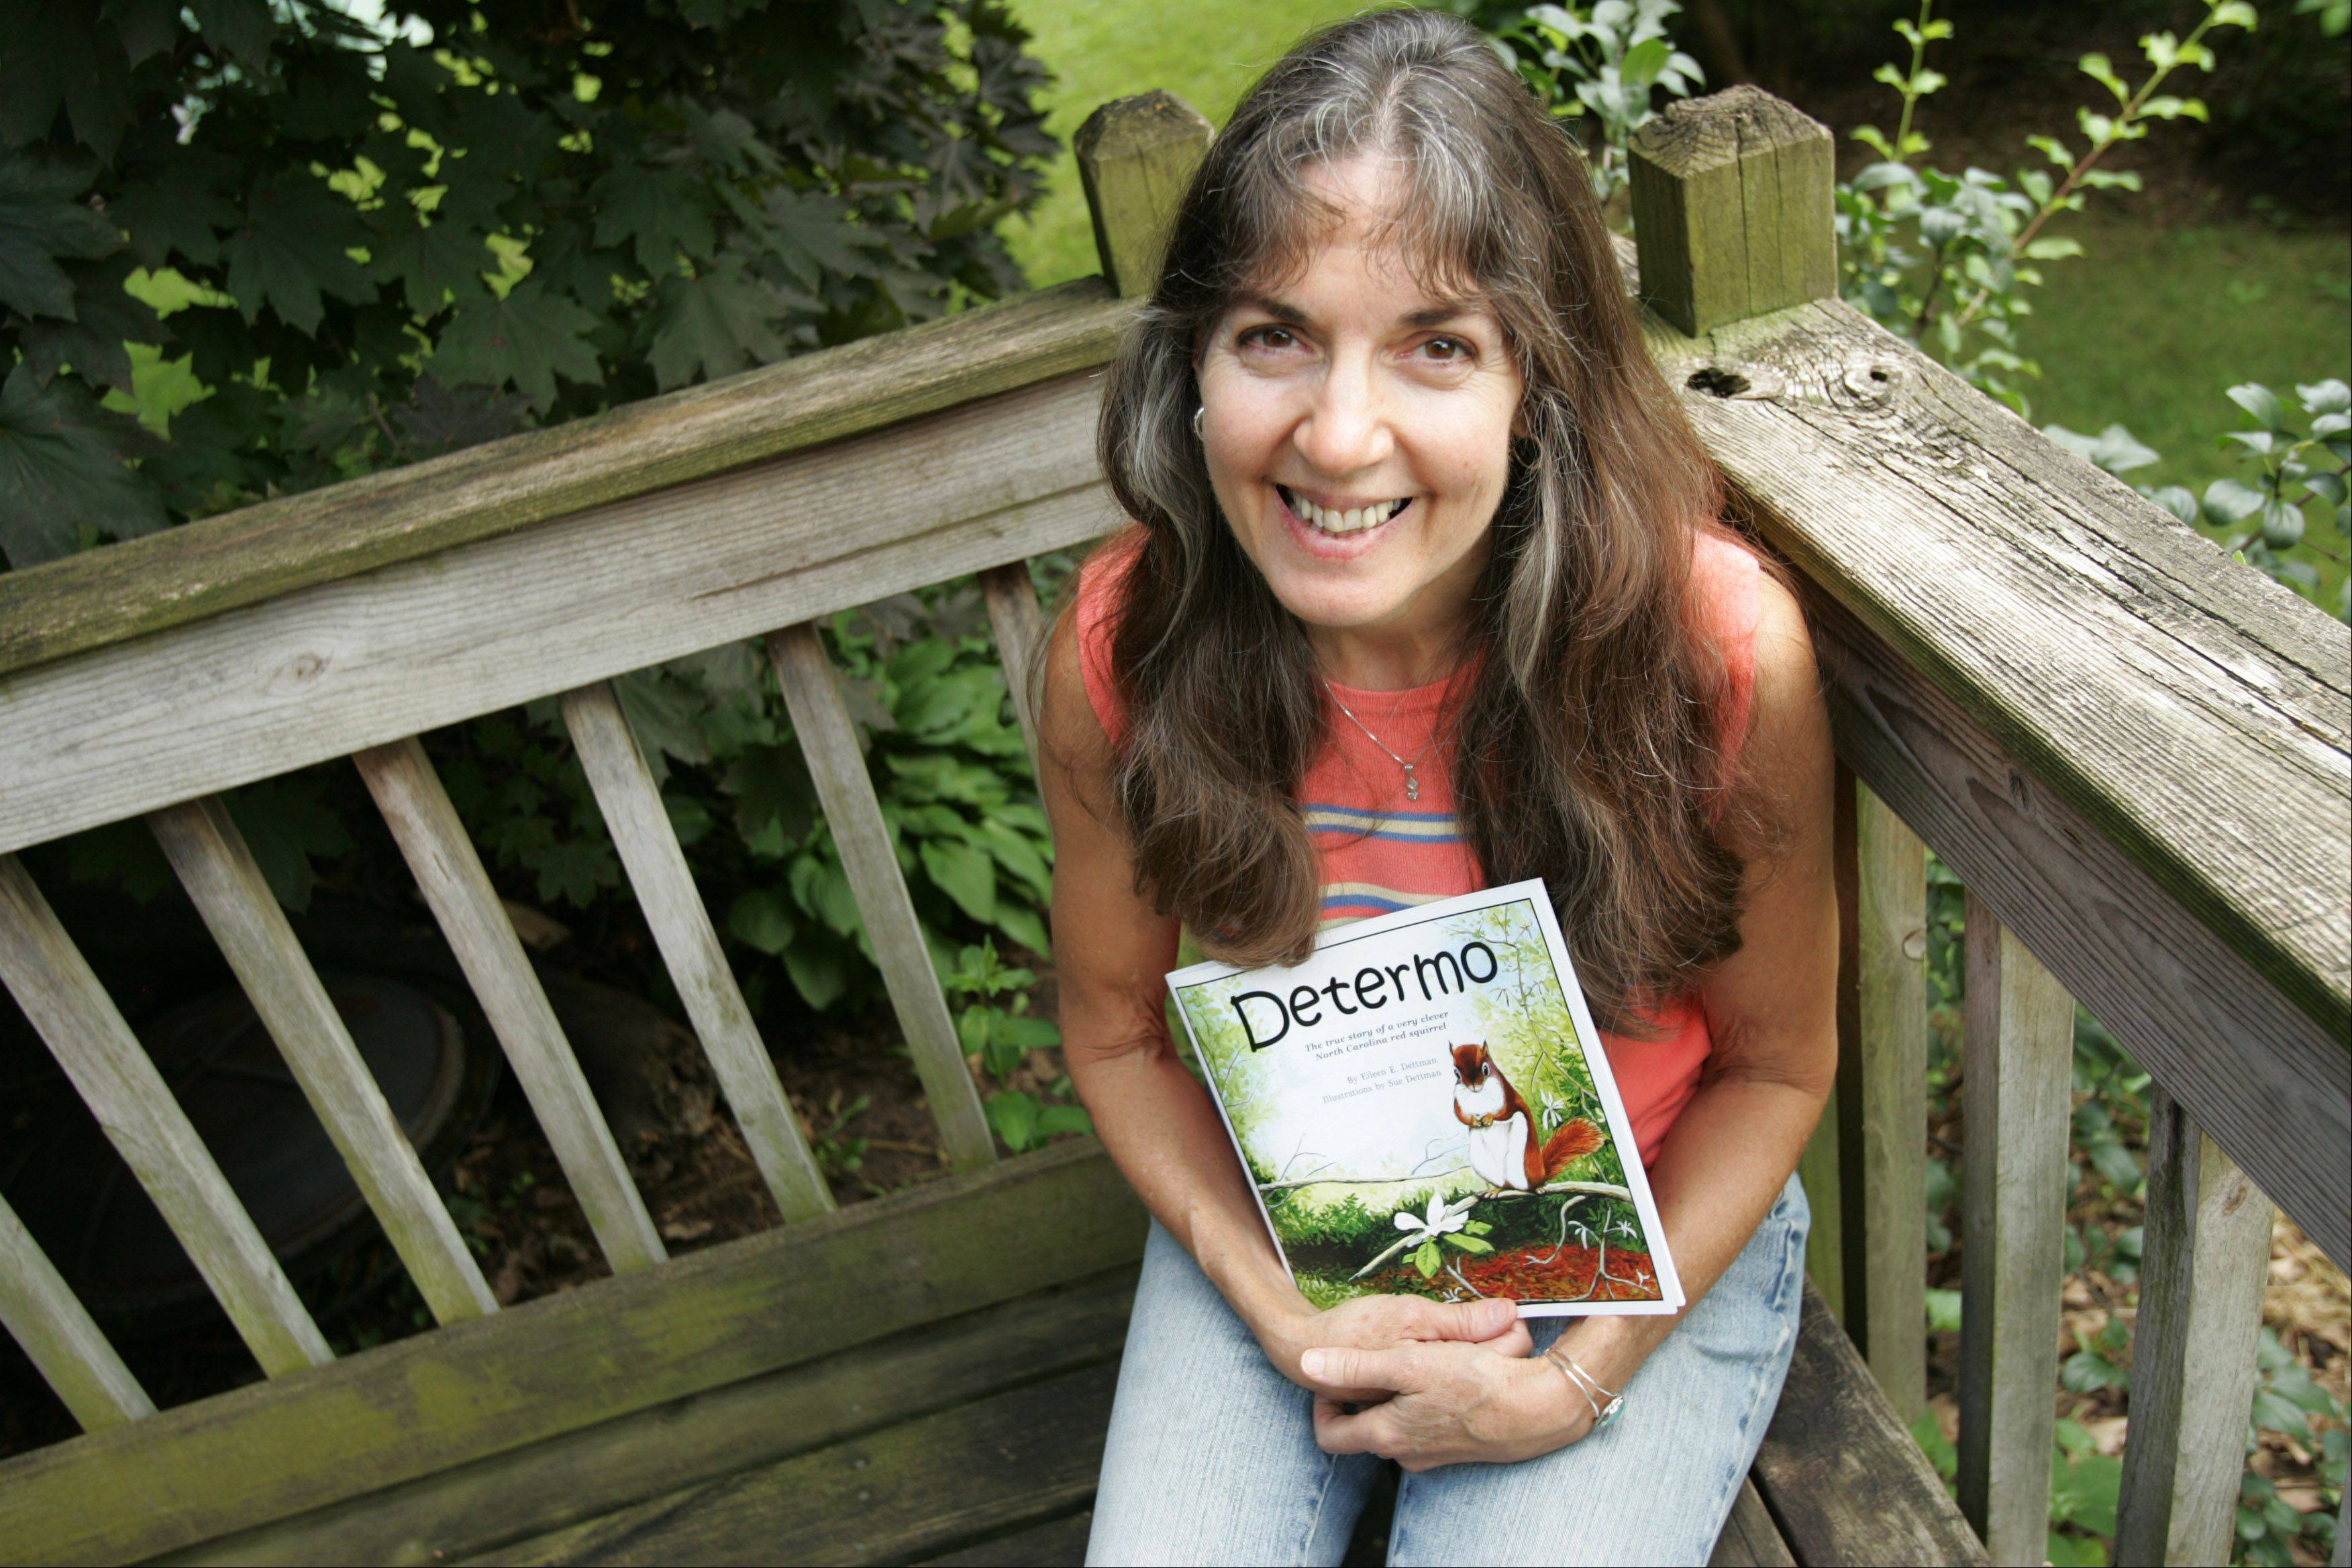 Elgin-based illustrator Sue Dettman has helped bring her mother-in-law�s picture book to life. The story of Determo the squirrel details her mother-in-law�s battle with a crafty red squirrel.